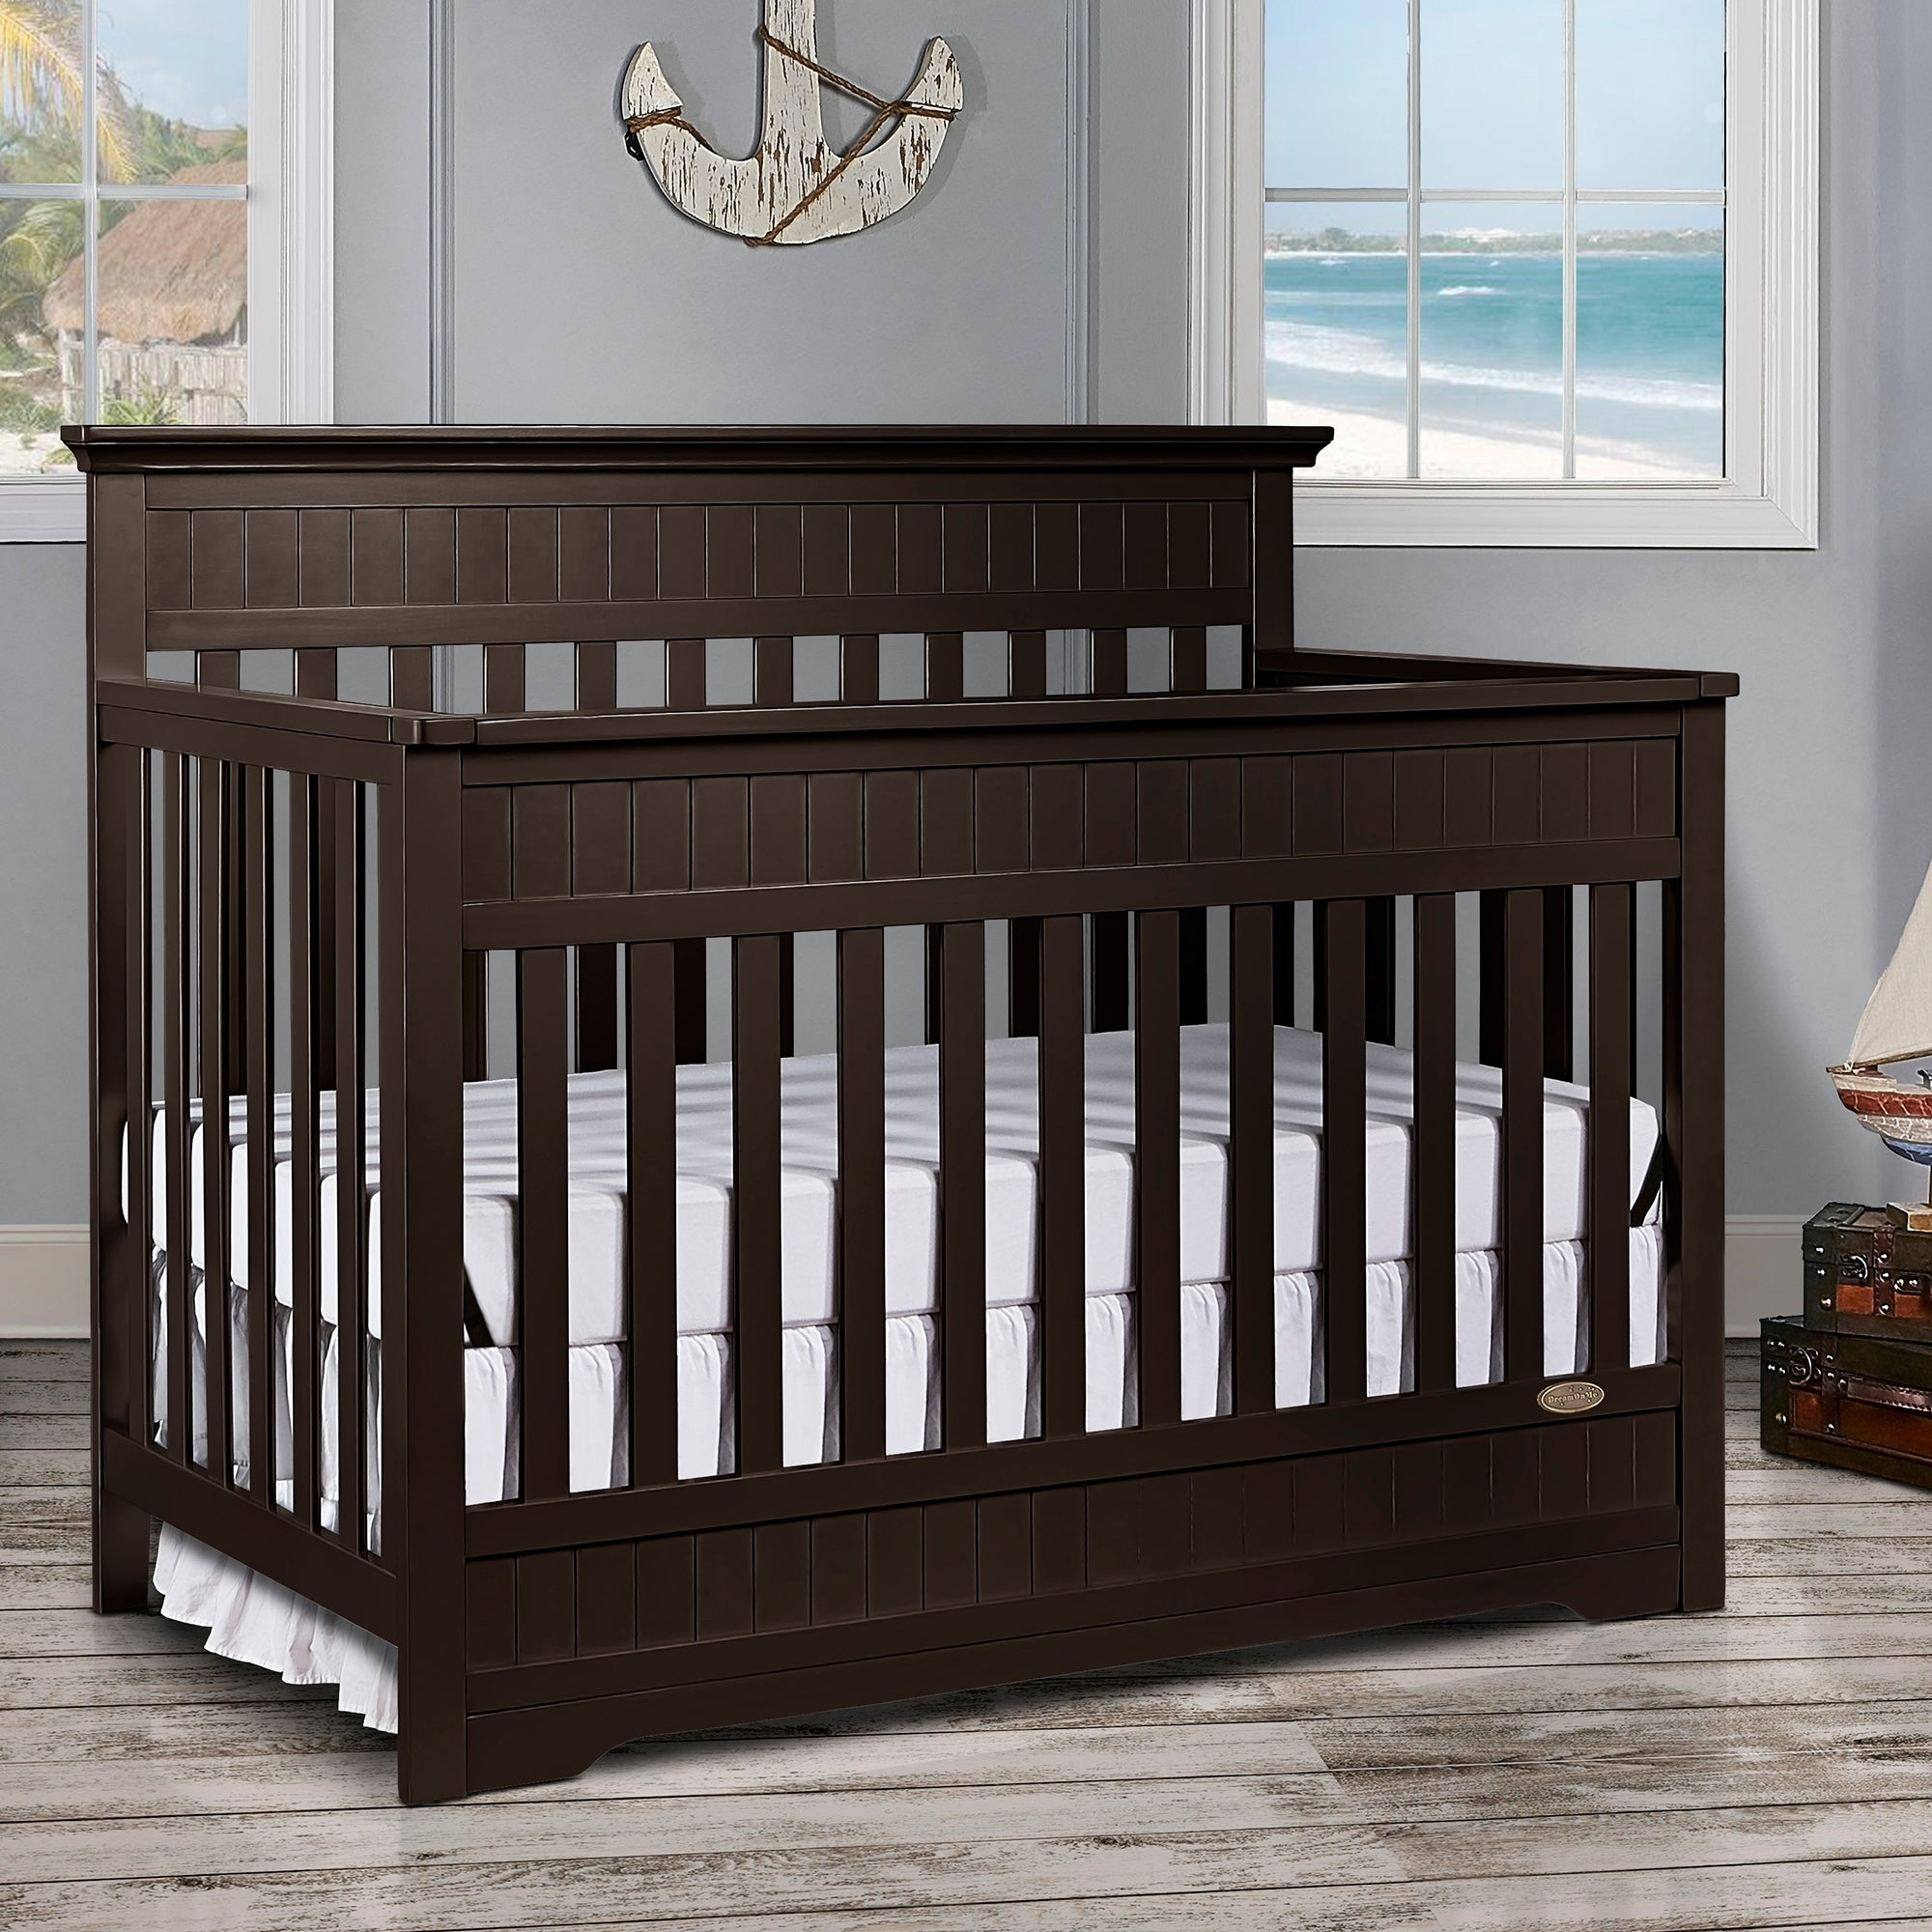 size toddler dresser diaper and most tables on beautiful little fosterboyspizza bed is multipurpose rugged plus me baby dream changing a impressive constructed todays drawer convertible of with crib cribs ideas part full